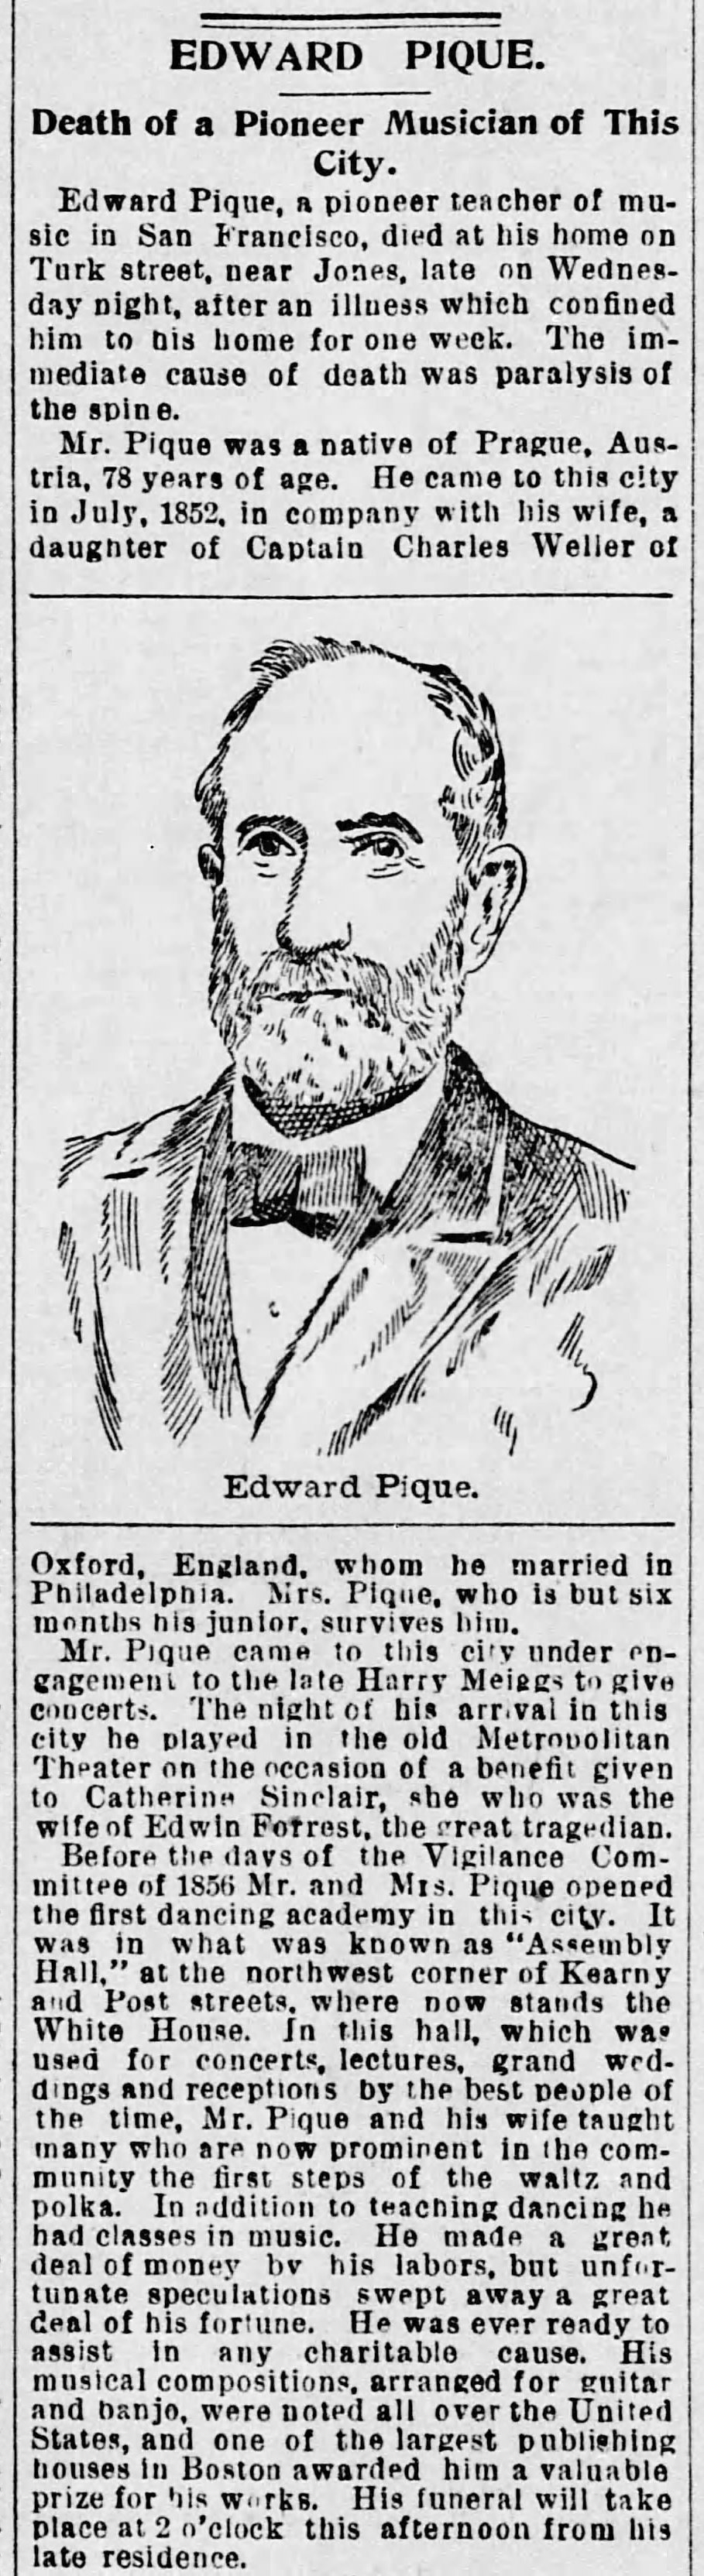 """""""Edward Pique: Death of a Pioneer Musician of This City,""""  San Francisco  Morning Call , 4 August 1893, p.10. Source: Newspapers.com"""